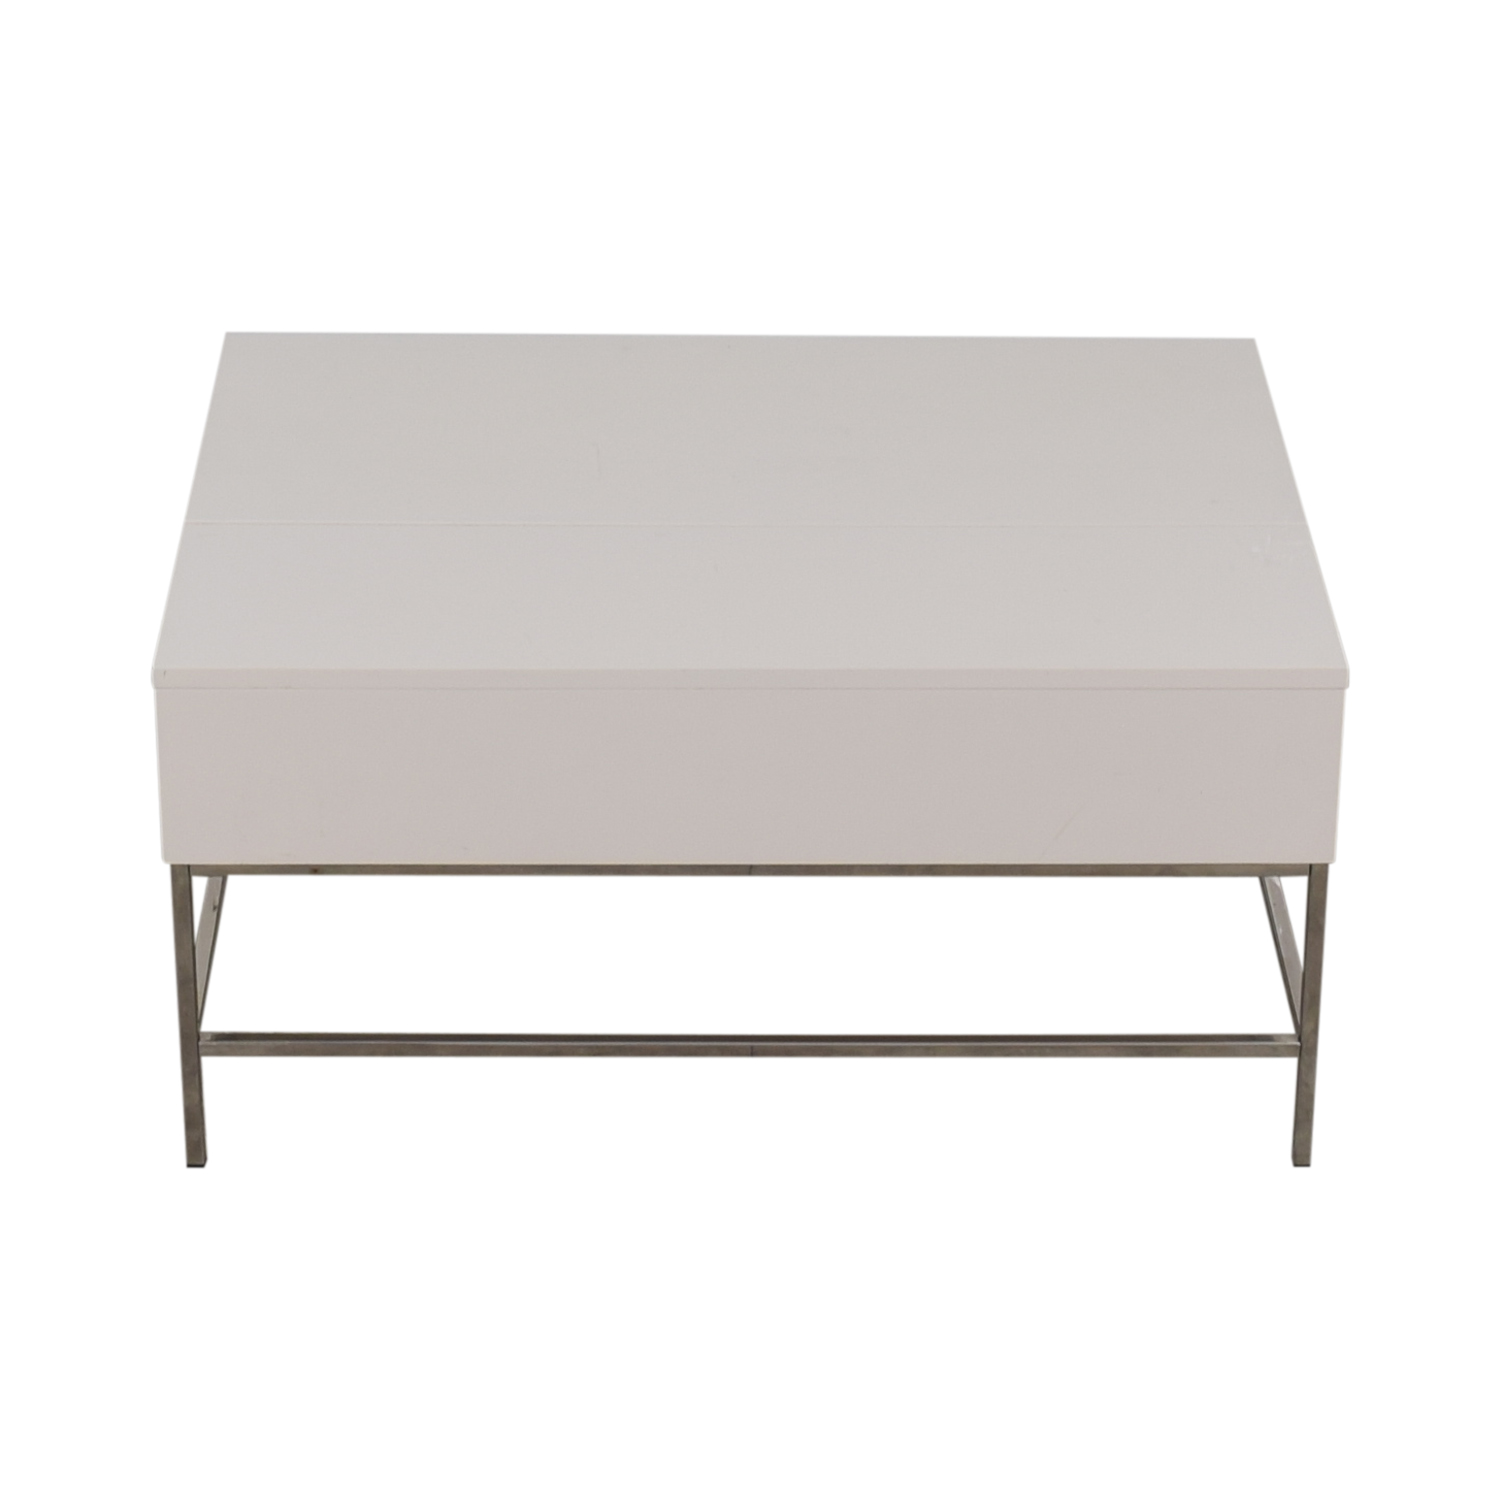 West Elm West Elm Lacquer Storage Pop-Up Coffee Table on sale